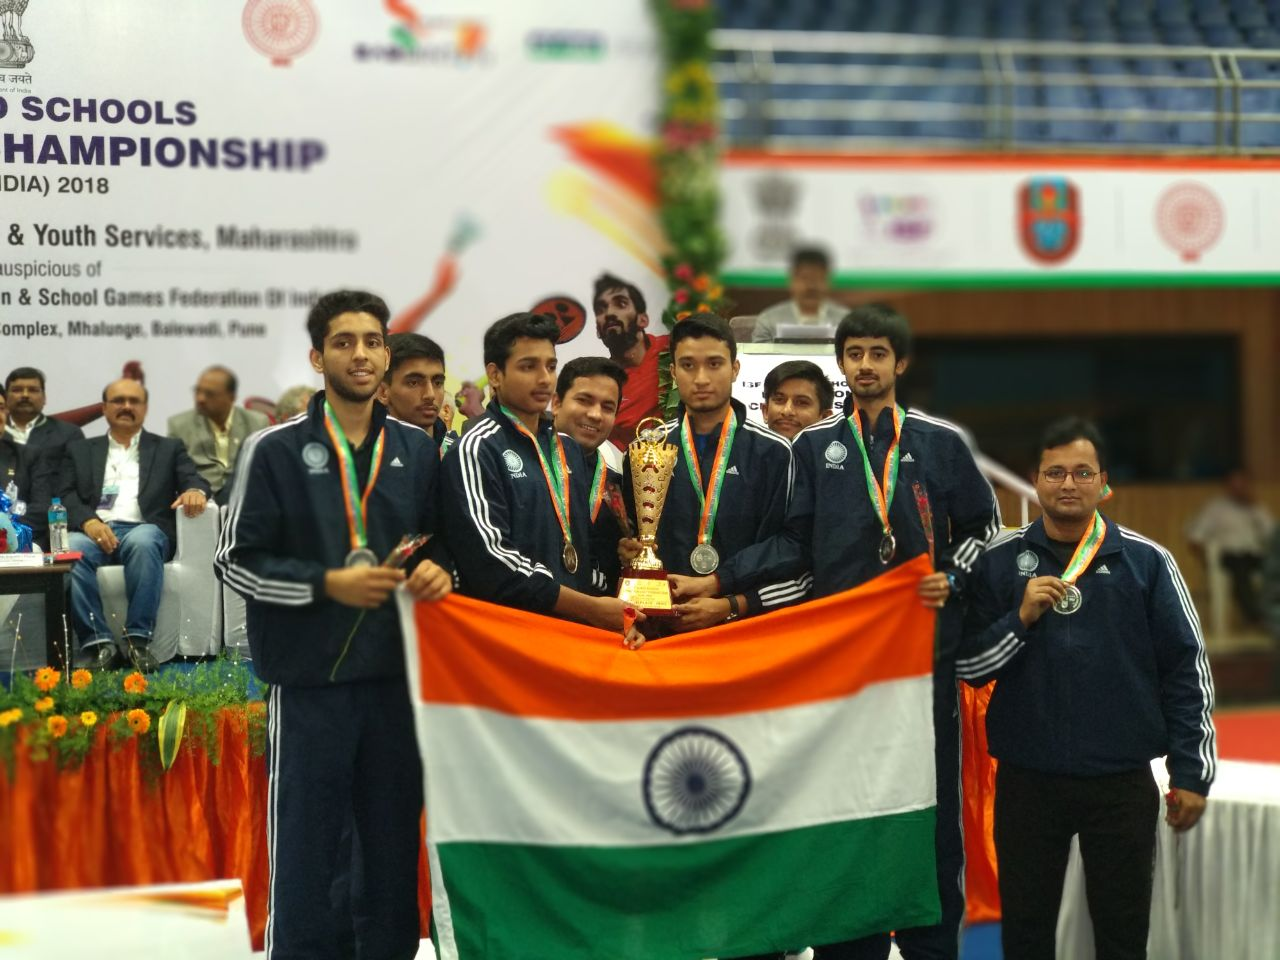 ISF WORLD SCHOOL BADMINTON CHAMPIONSHIP 2018, PUNE